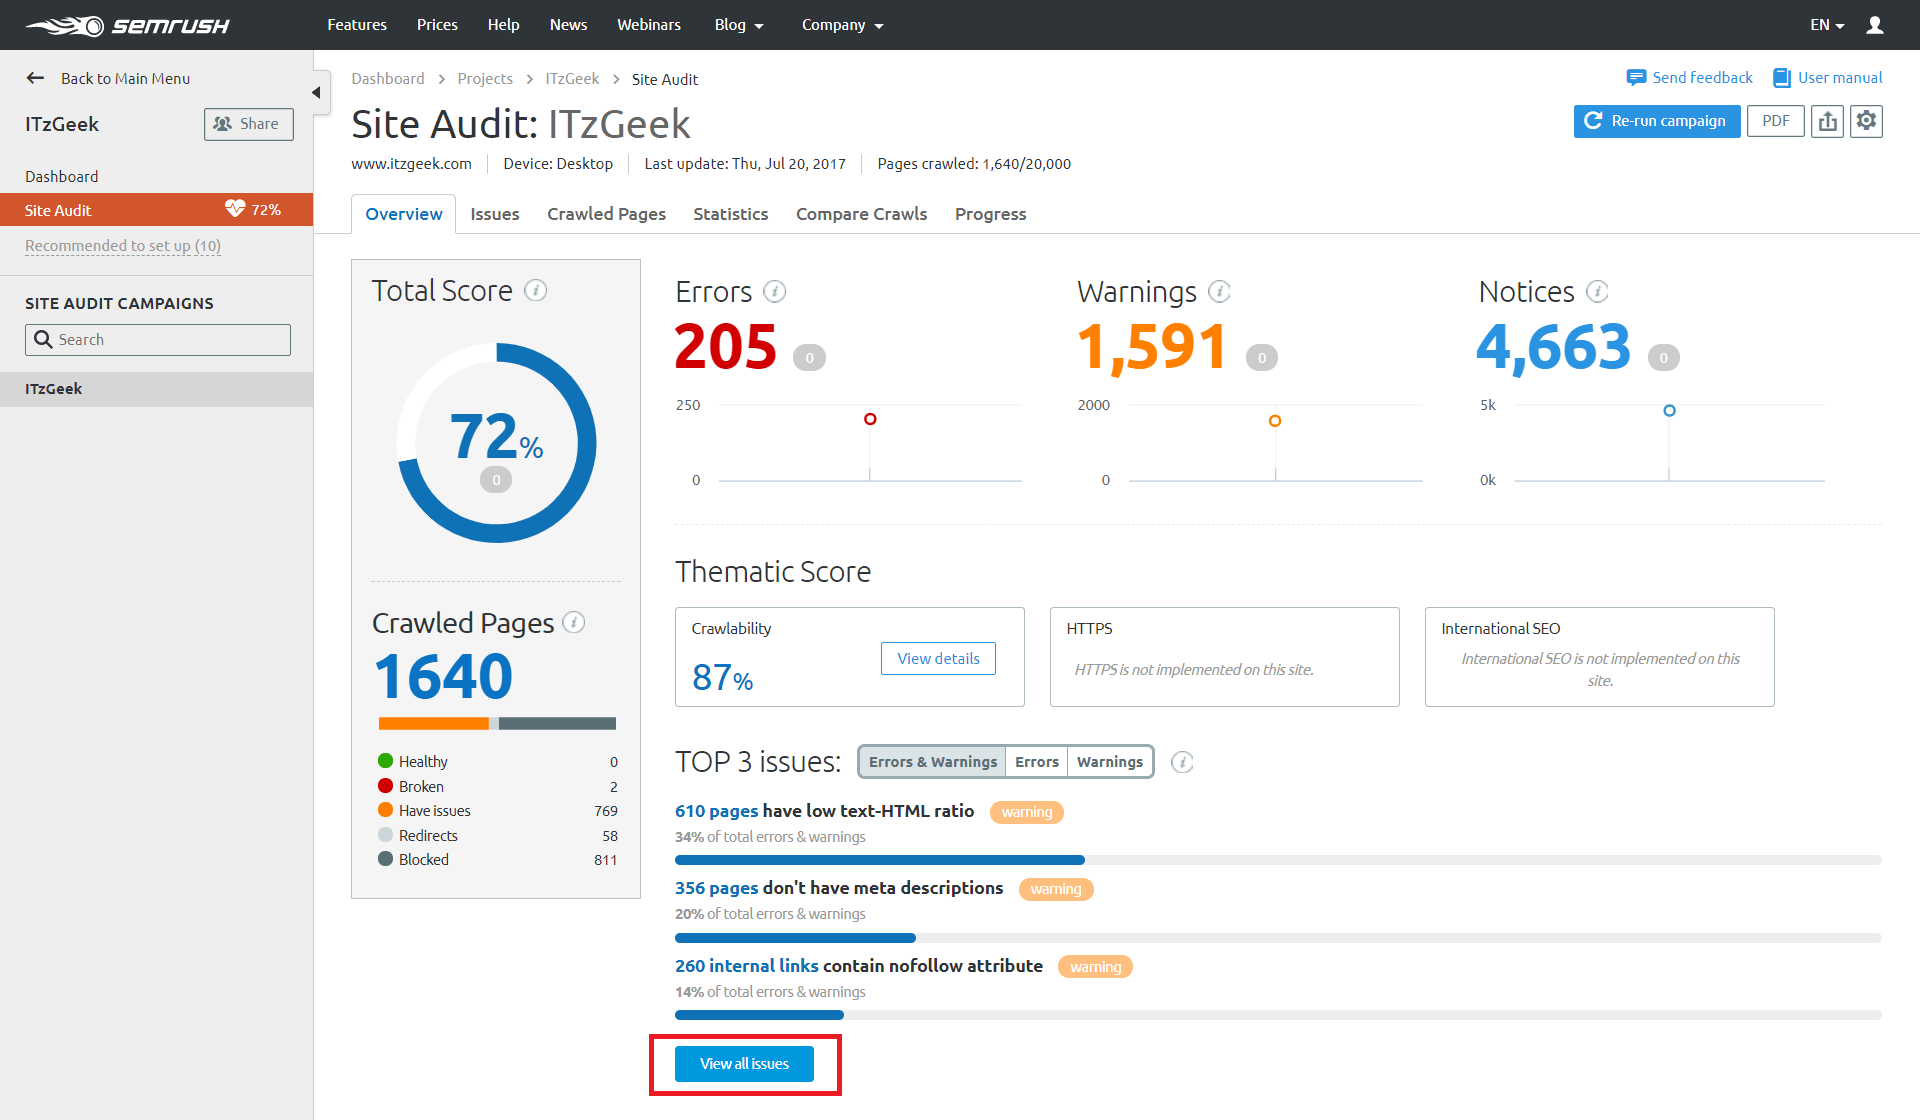 SEMrush Review - Site Audit Report